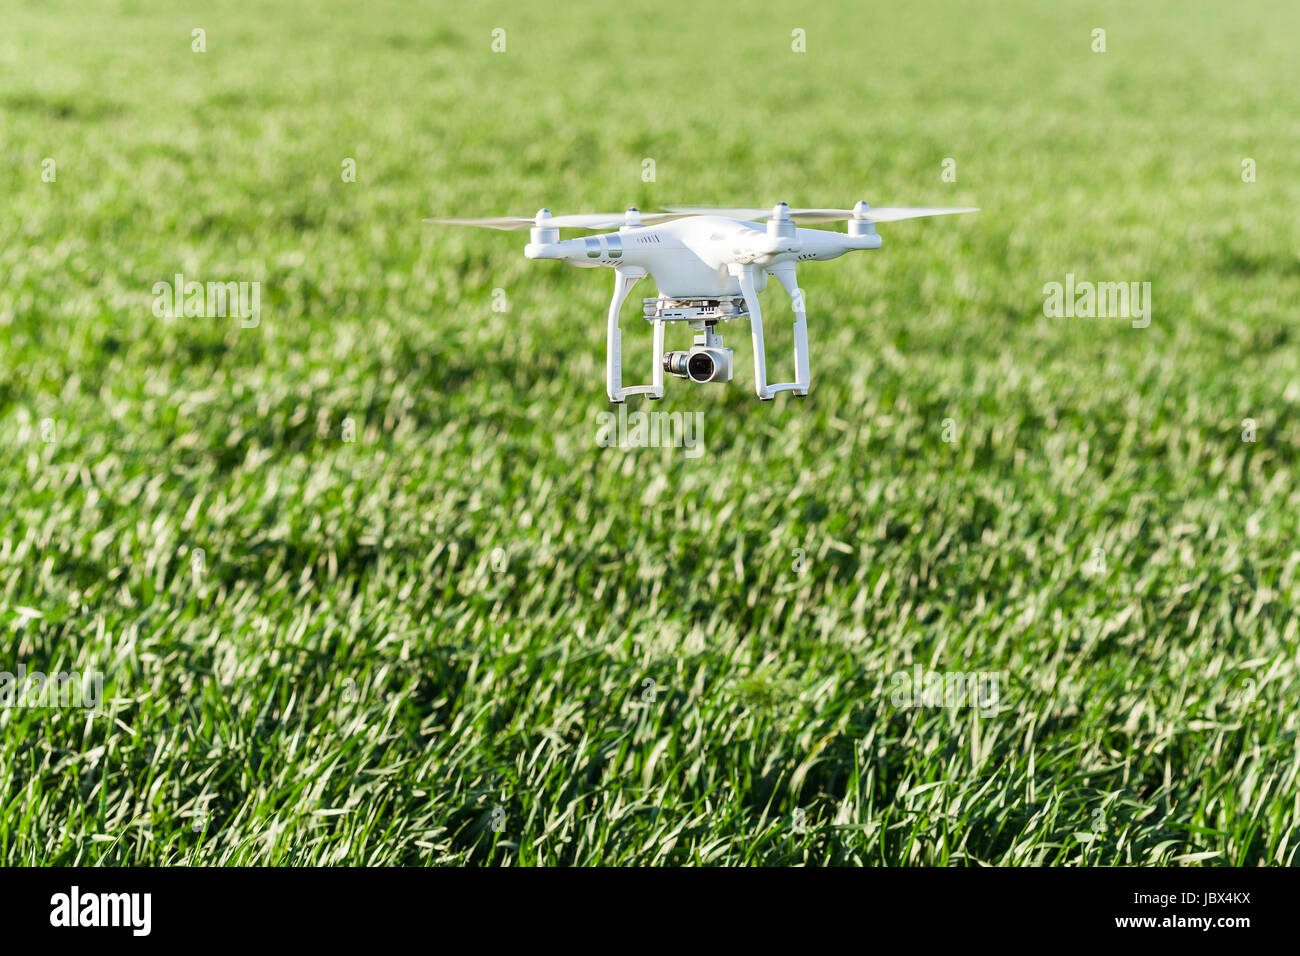 quadcopter outdoors, aerial imagery and recreation concept - low flying white drone with four propellers and build - Stock Image